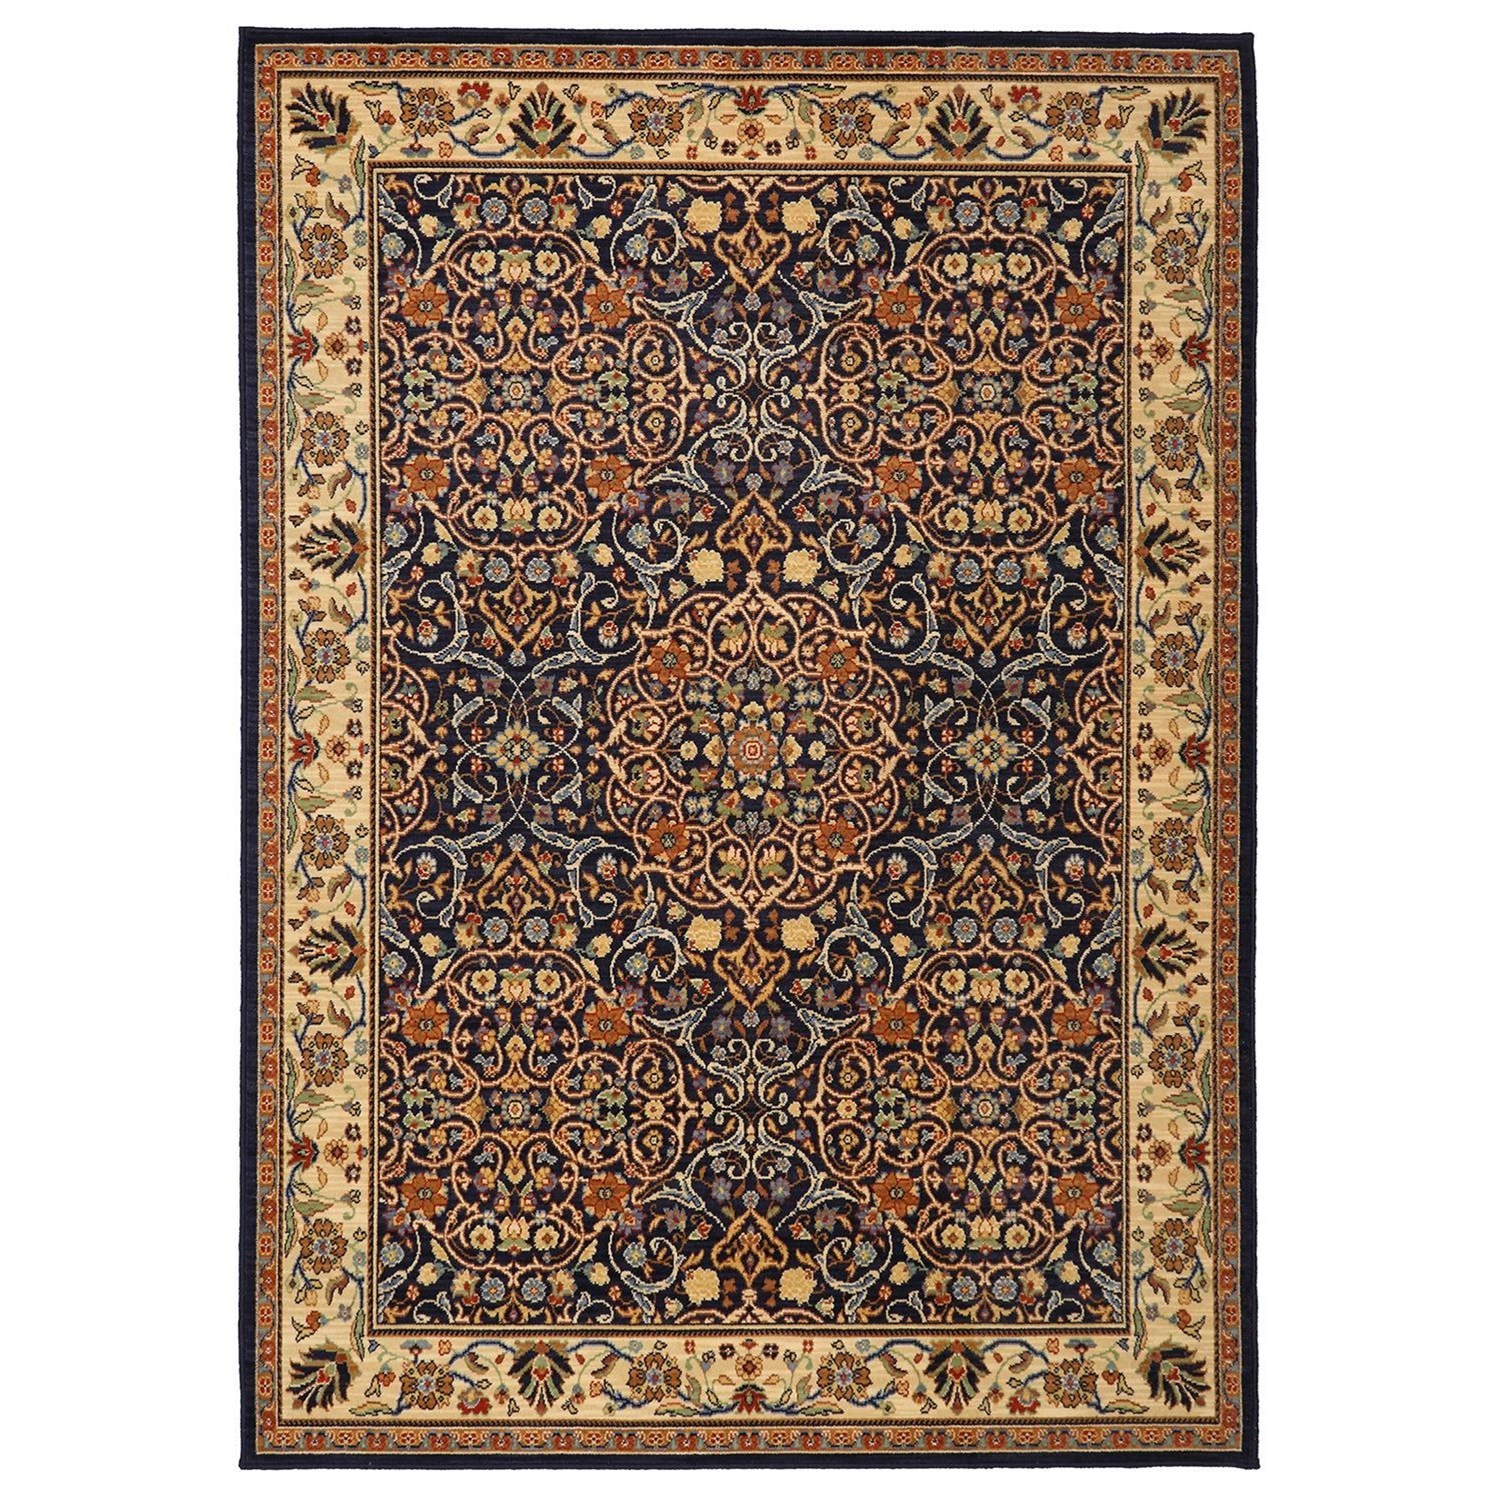 Karastan Rugs English Manor 2'6x4' Sutton Rug - Item Number: 02120 00603 030048